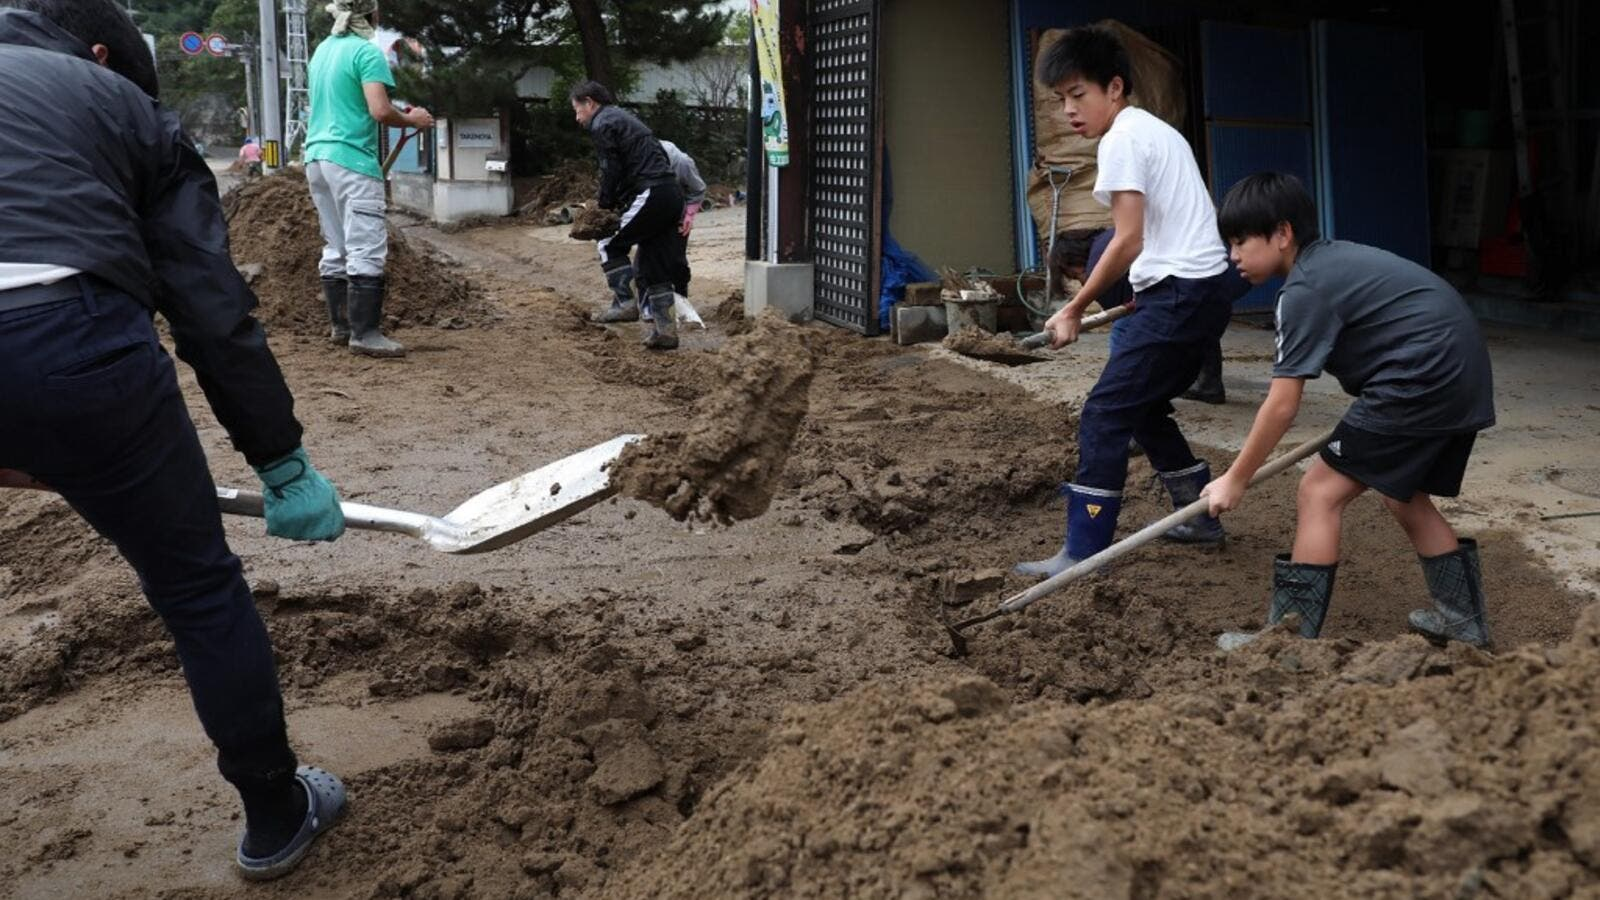 Residents clear mud from a street at the flooded area in Marumori, Miyagi prefecture on October 14, 2019, in the aftermath of Typhoon Hagibis. Tens of thousands of rescue workers were searching for survivors of powerful Typhoon Hagibis, two days after the storm slammed into Japan, killing at least 35 people. (Jiji Press / AFP)